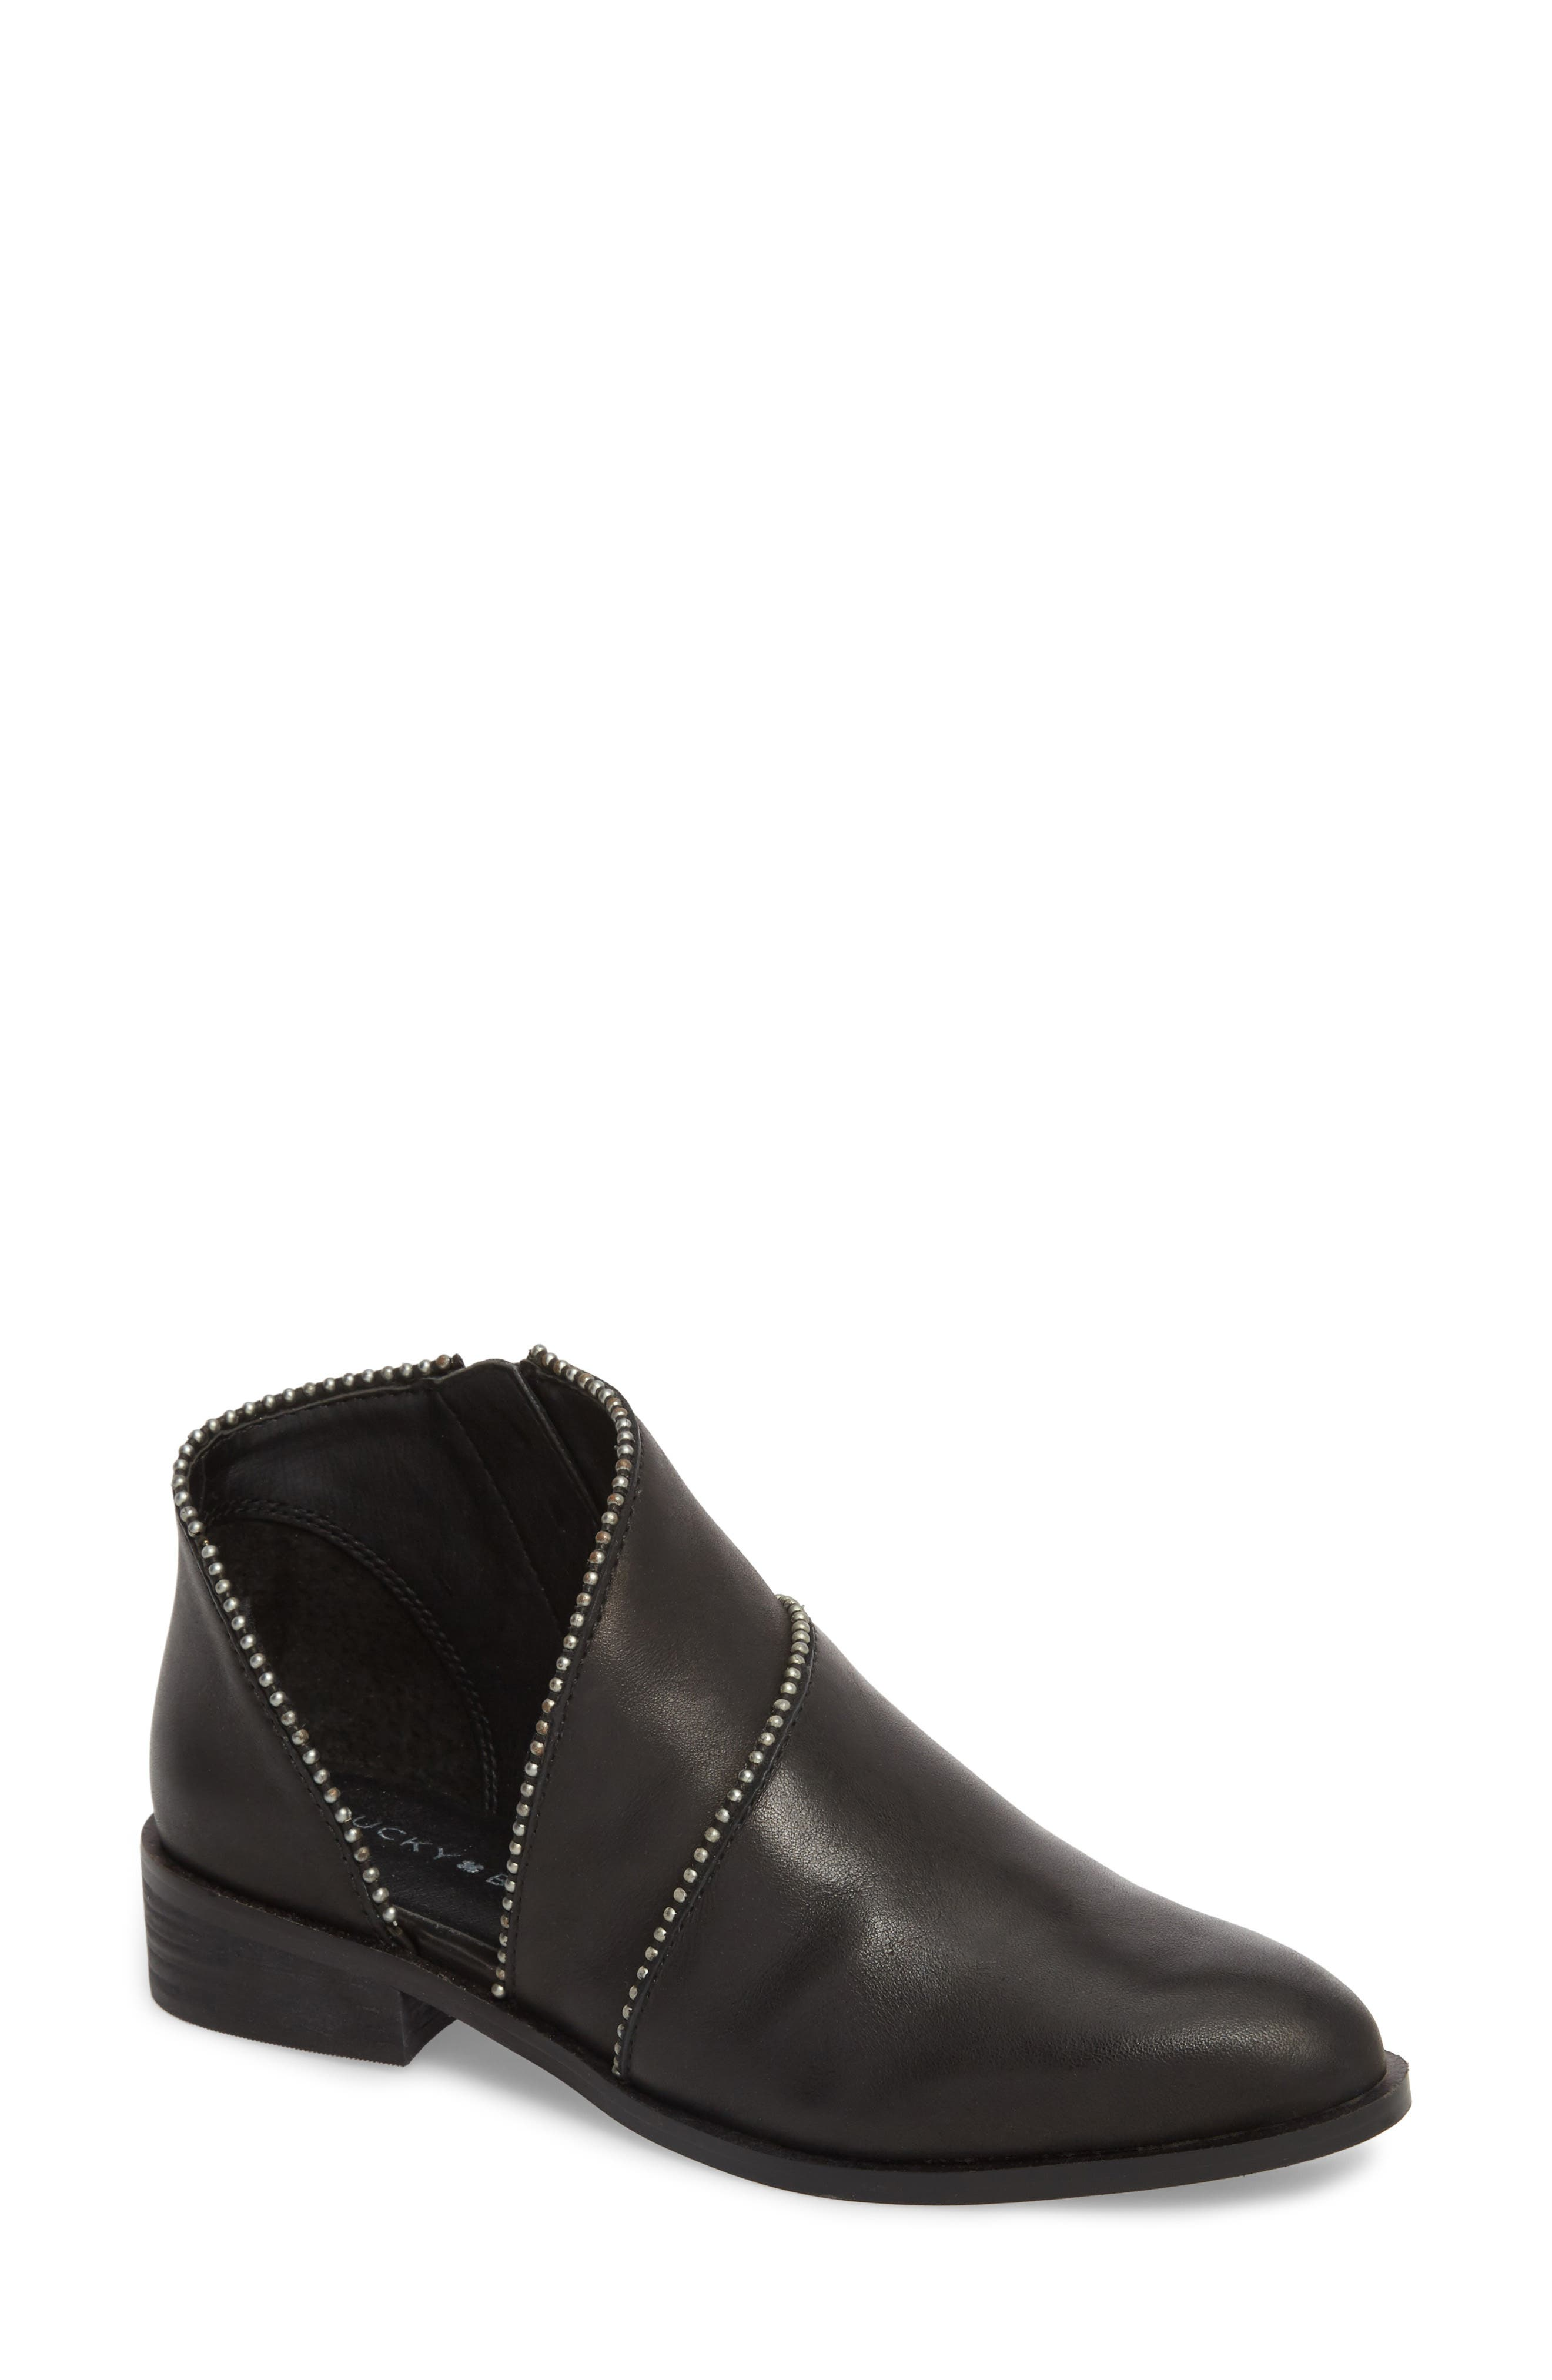 Prucella Bootie,                             Main thumbnail 1, color,                             BLACK LEATHER